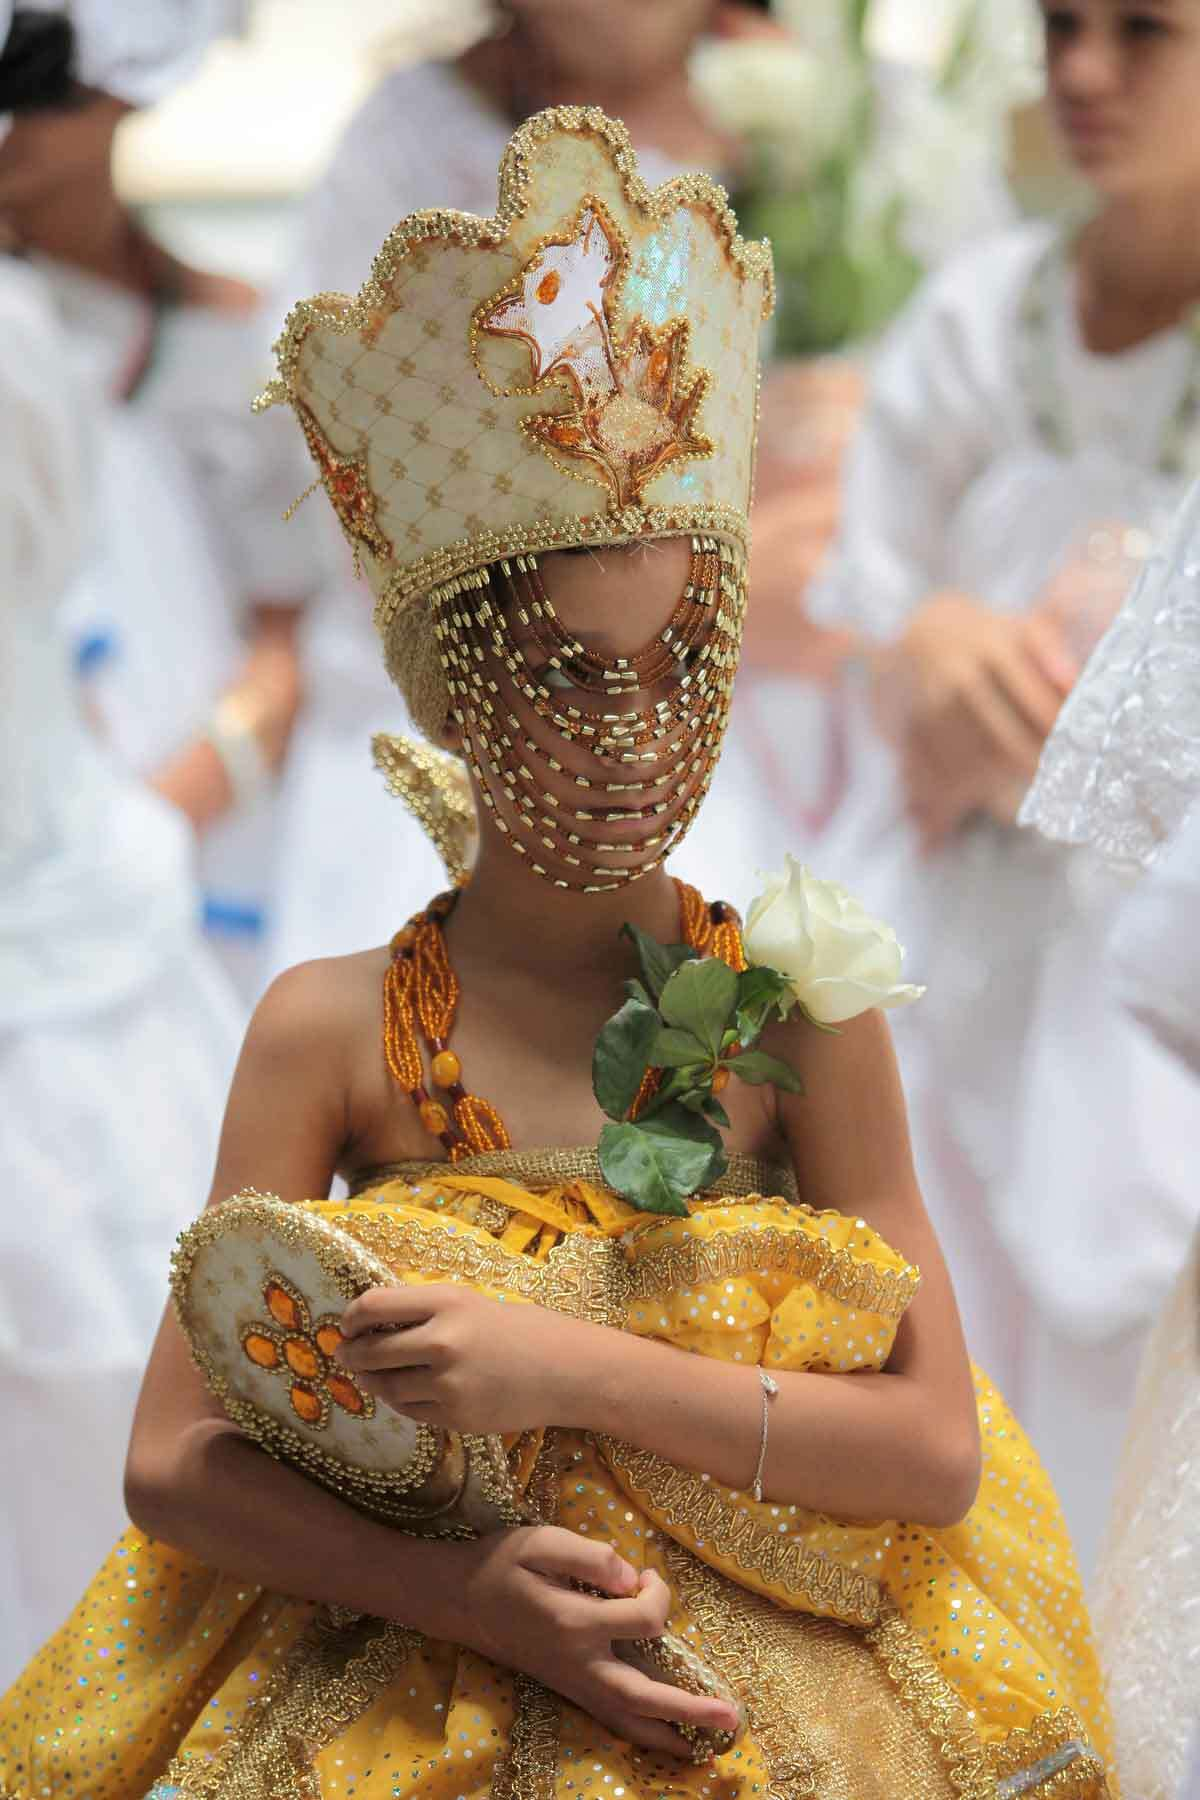 A girl dressed in ceremonial Oxun clothing takes part in a washing ceremony using lavender water during an event celebrating National Black Consciousness Day in Brasilia, Brazil, Tuesday, Nov. 20, 2012. National Black Consciousness Day honors African people's contribution to the history of Brazil and Oxun is a divinity from the African-Brazilian religion of Candoble representing the queen of all rivers and waterfalls. (AP Photo/Eraldo Peres)